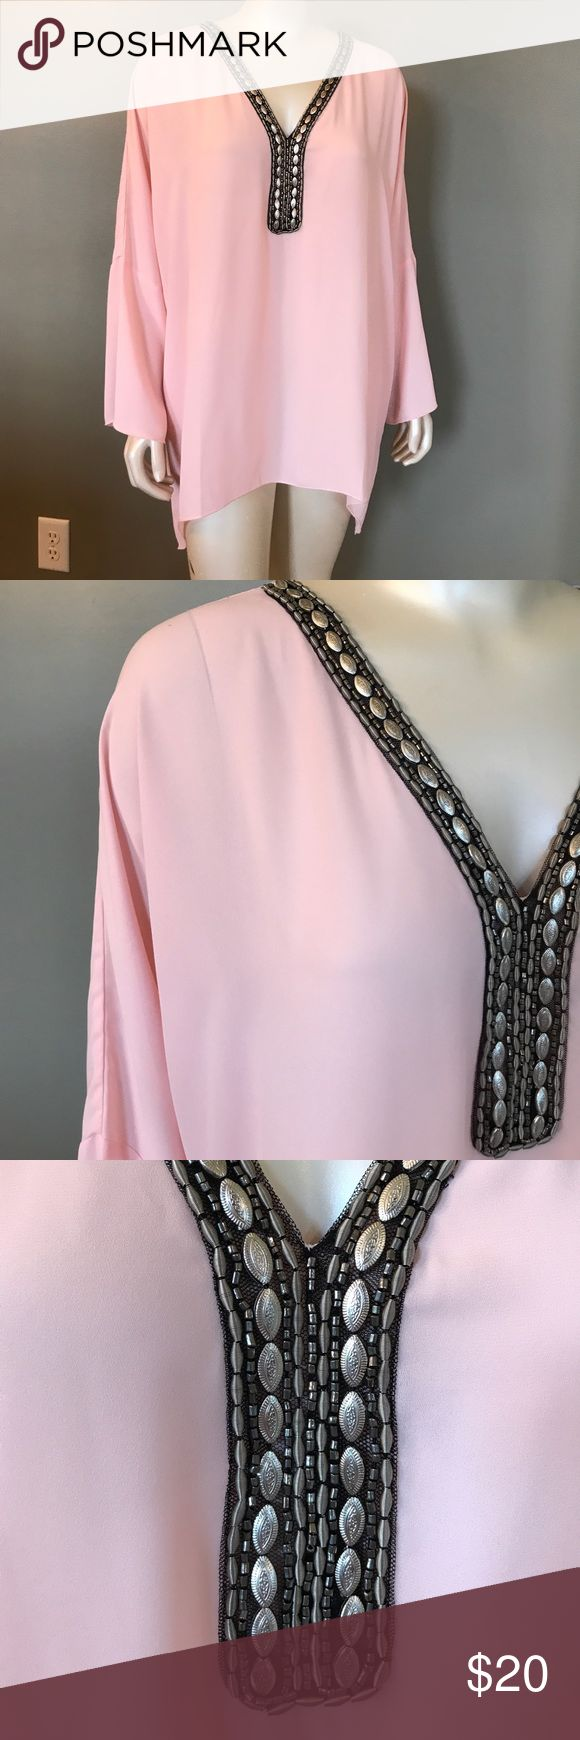 Pretty in Pink Tunic Soft Pink Top with Silver Beaded Trim Accents. Flows like a dream..... Split Sleeve Hem. On the sheer side. Looks great with flesh colored cami. Boston Proper Tops Tunics